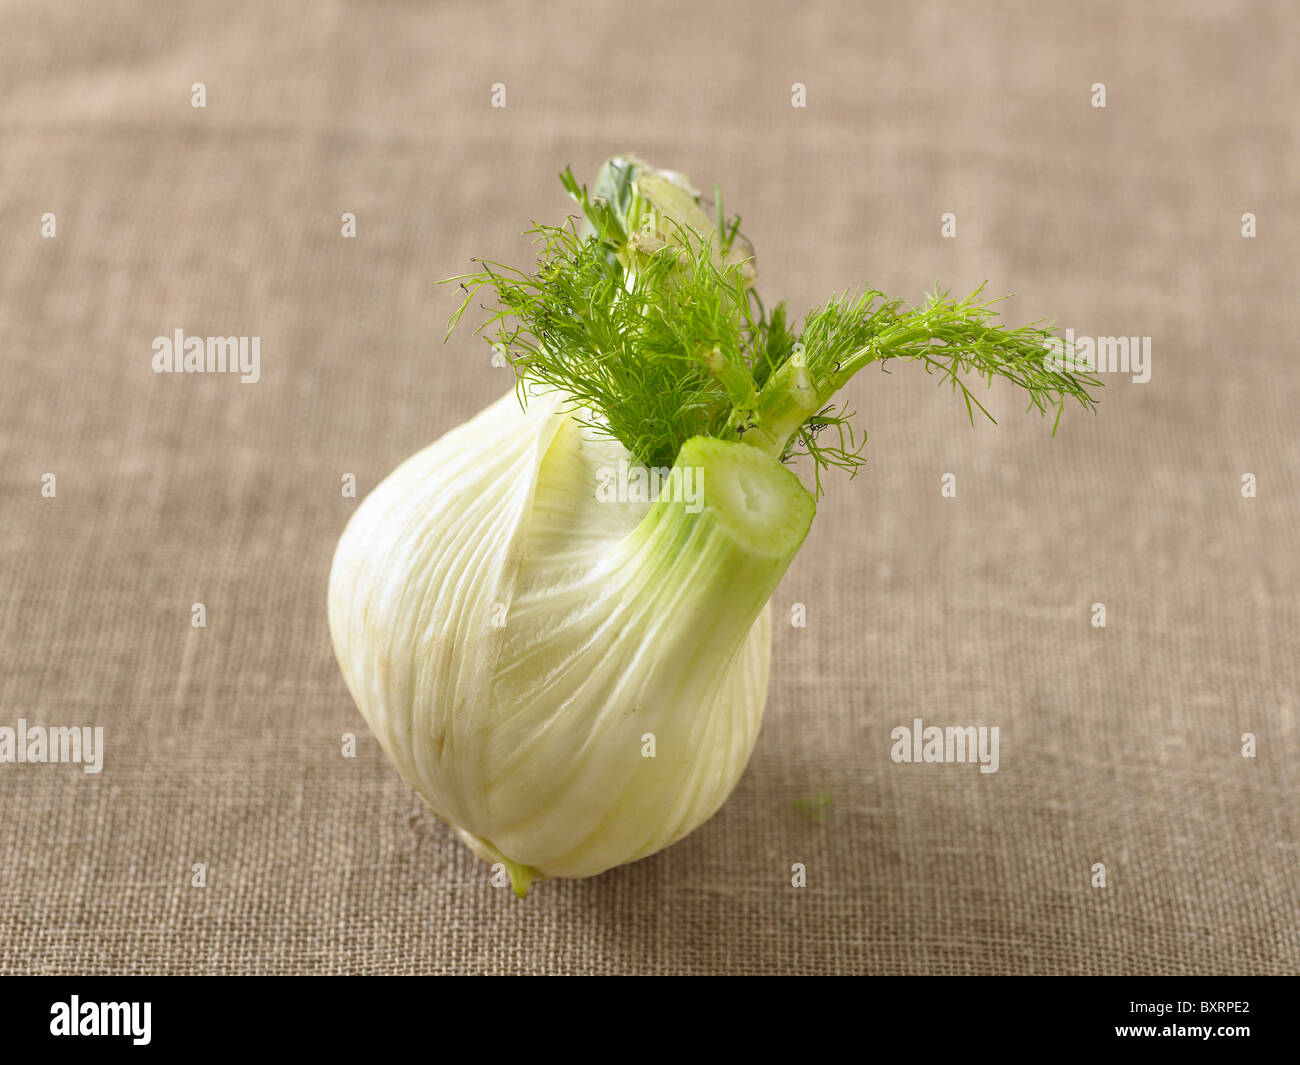 Fennel - Stock Image